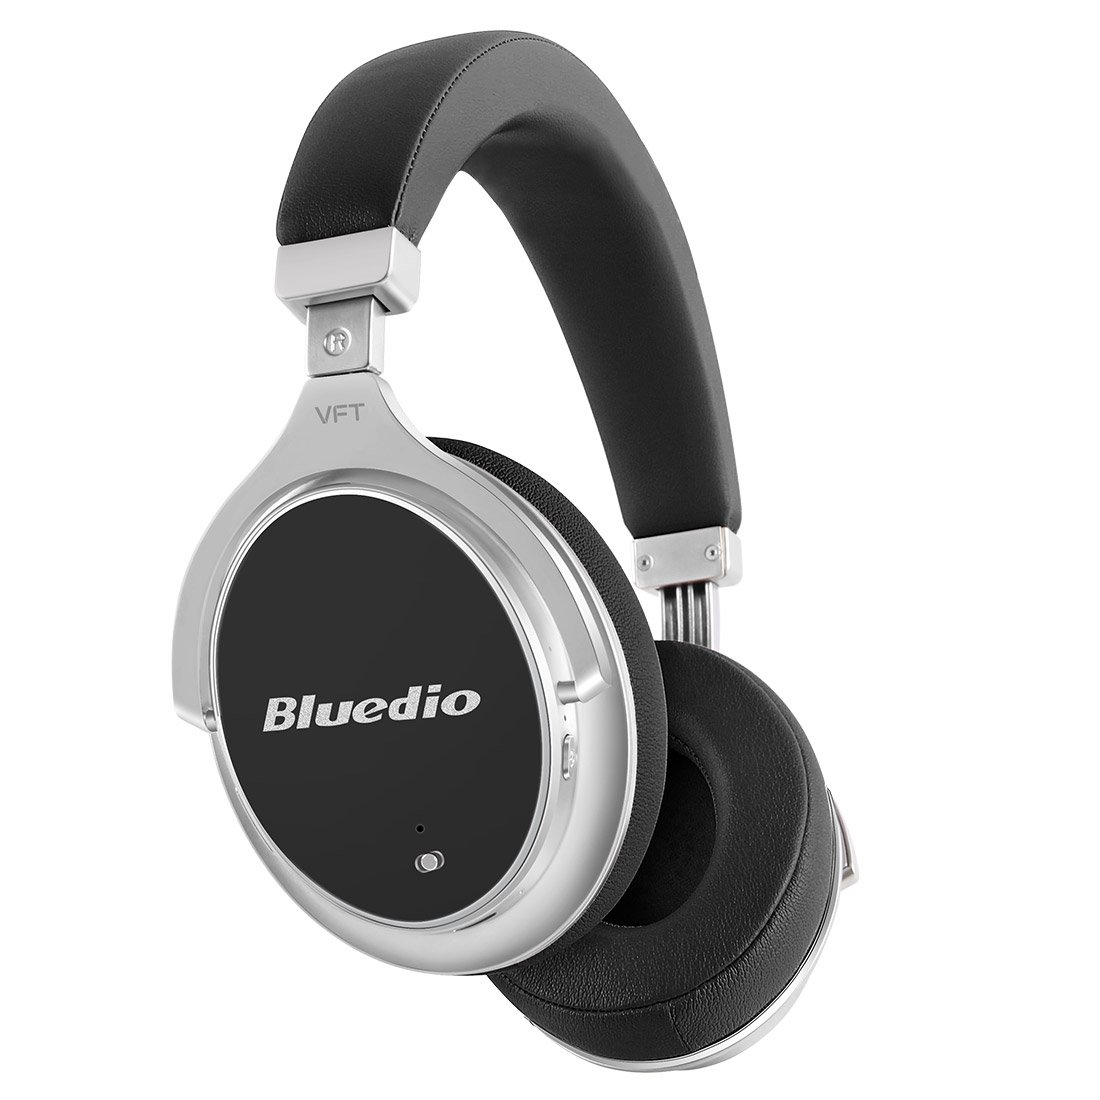 bbad79d5ddd Bluedio F2 Wireless Bluetooth Headphones with Mic, Active Noise Cancelling( ANC) and Vector Flow Technology, Over Ear Headsets with Ear Cups  180°Rotation, ...